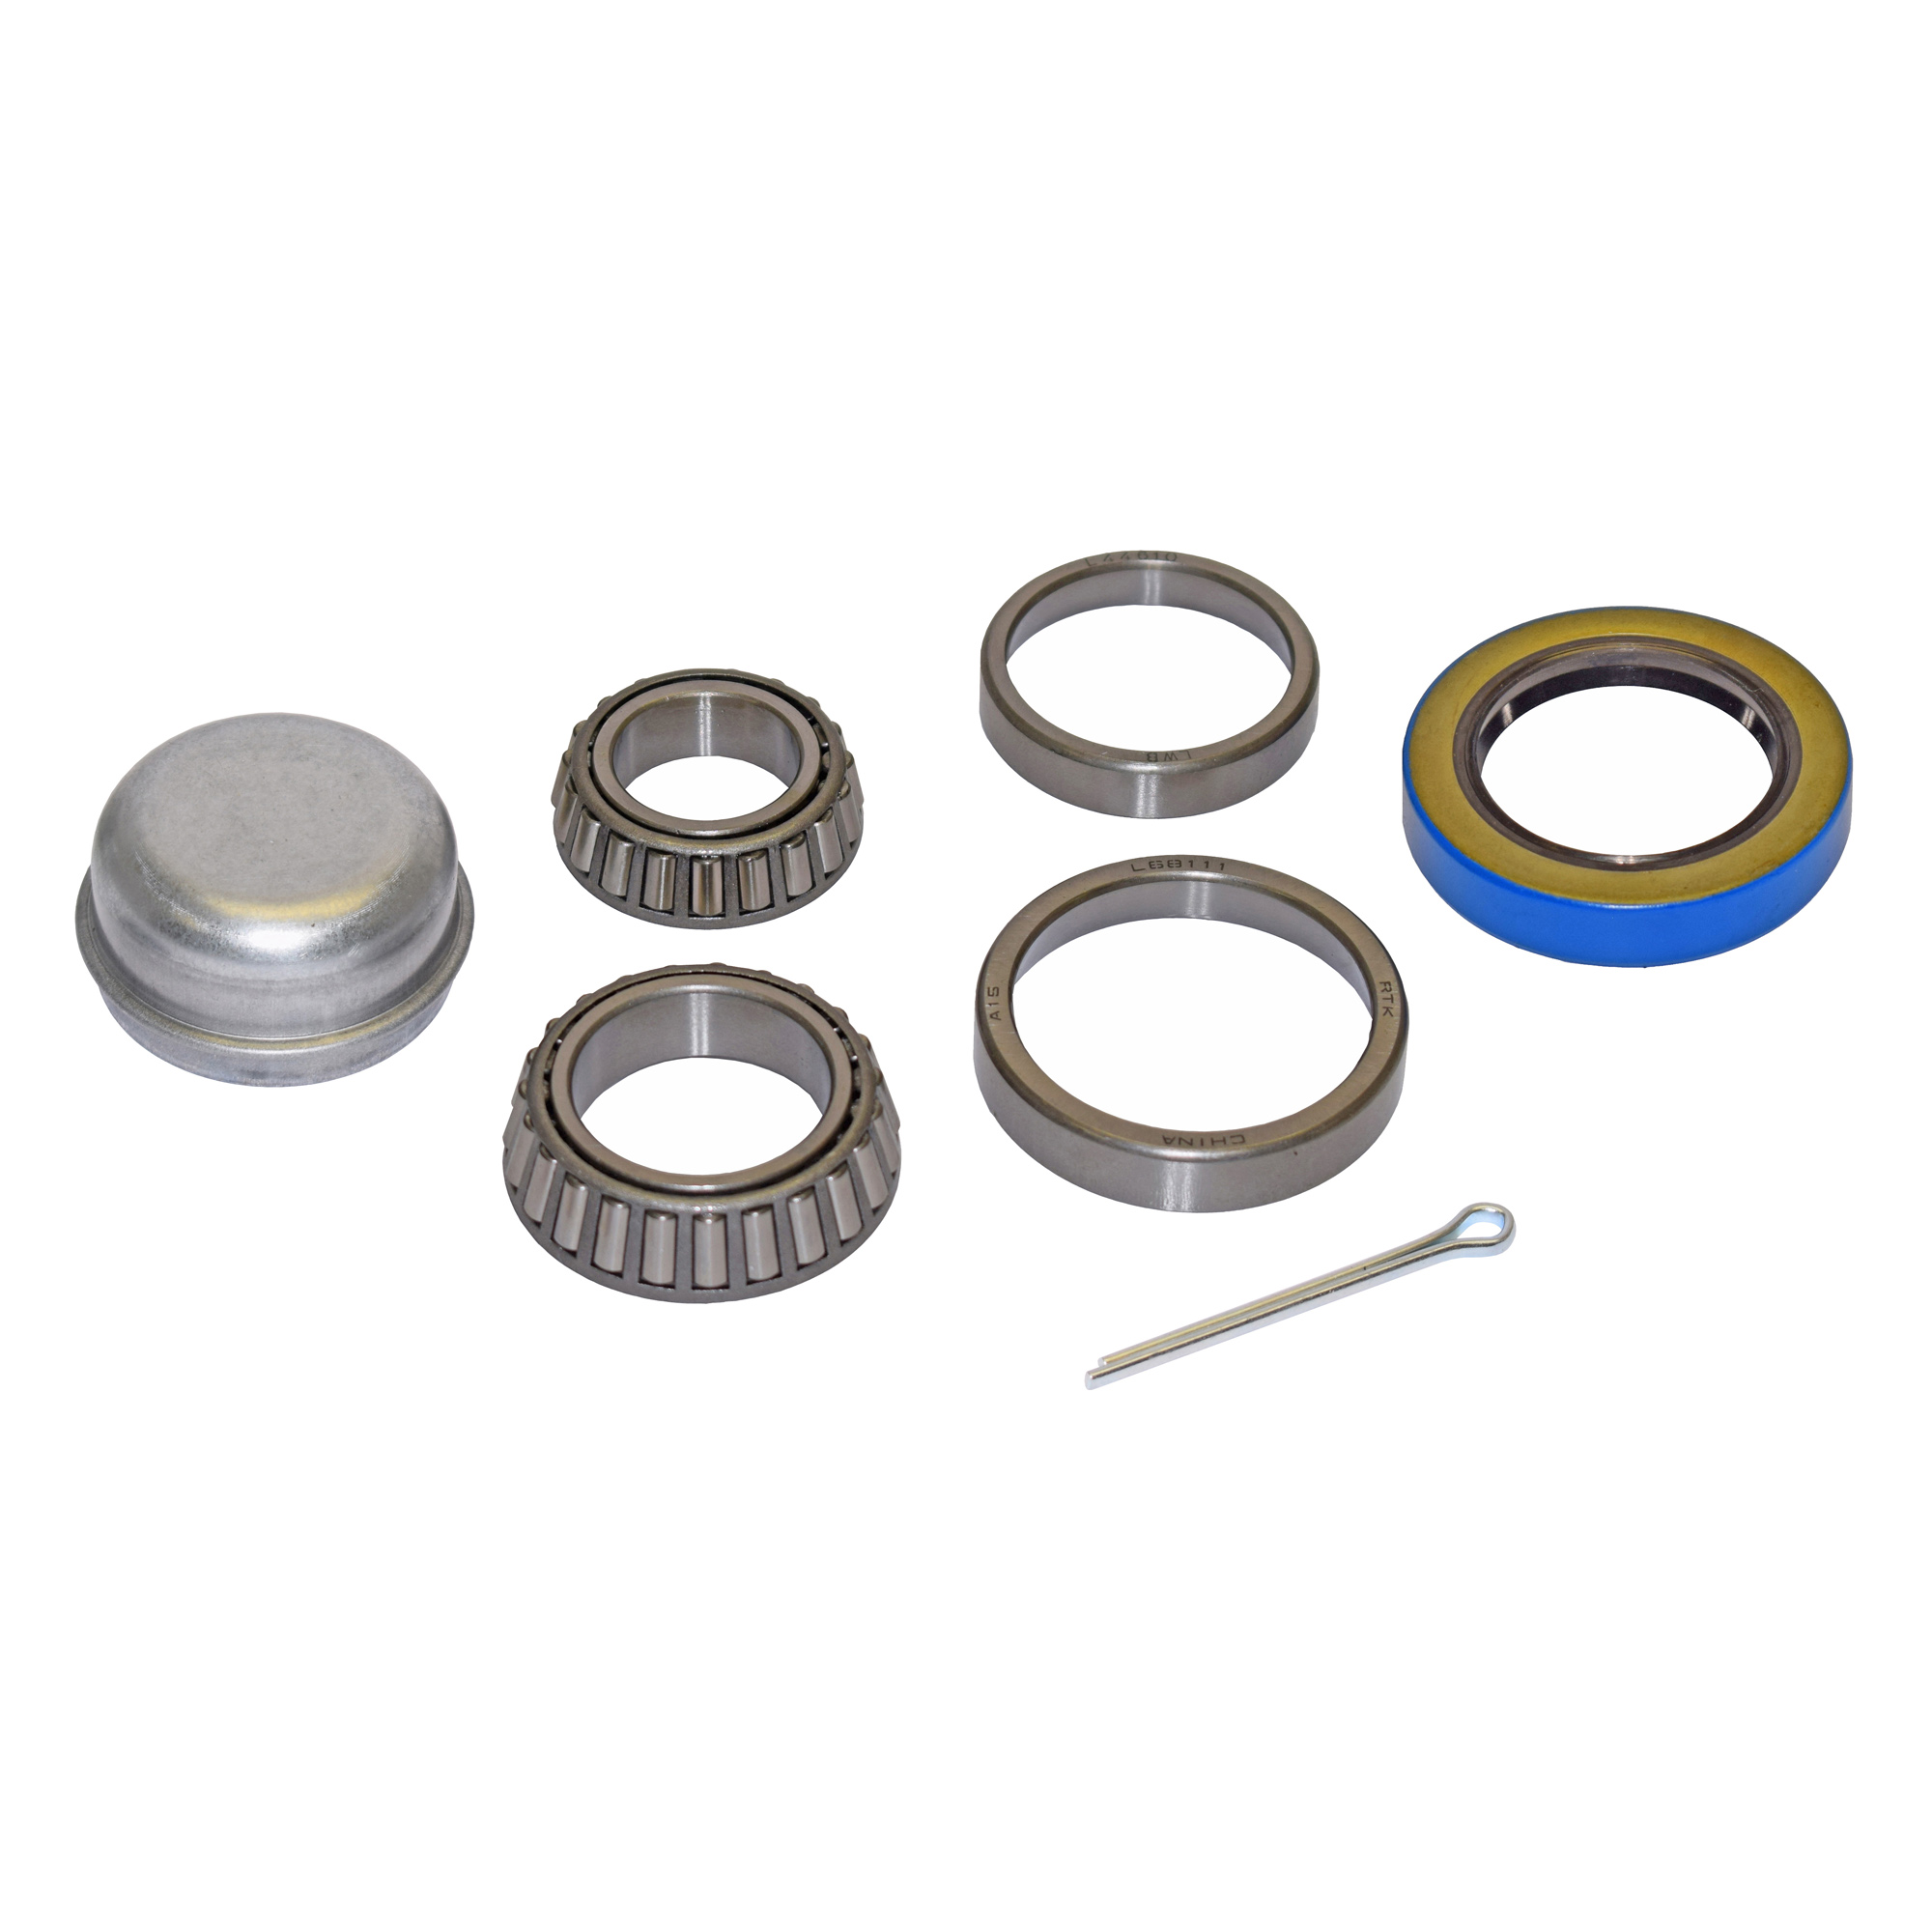 Trailer Bearing Repair Kit For 1-3/8 Inch to 1-1/16 Inch Tapered Spindle